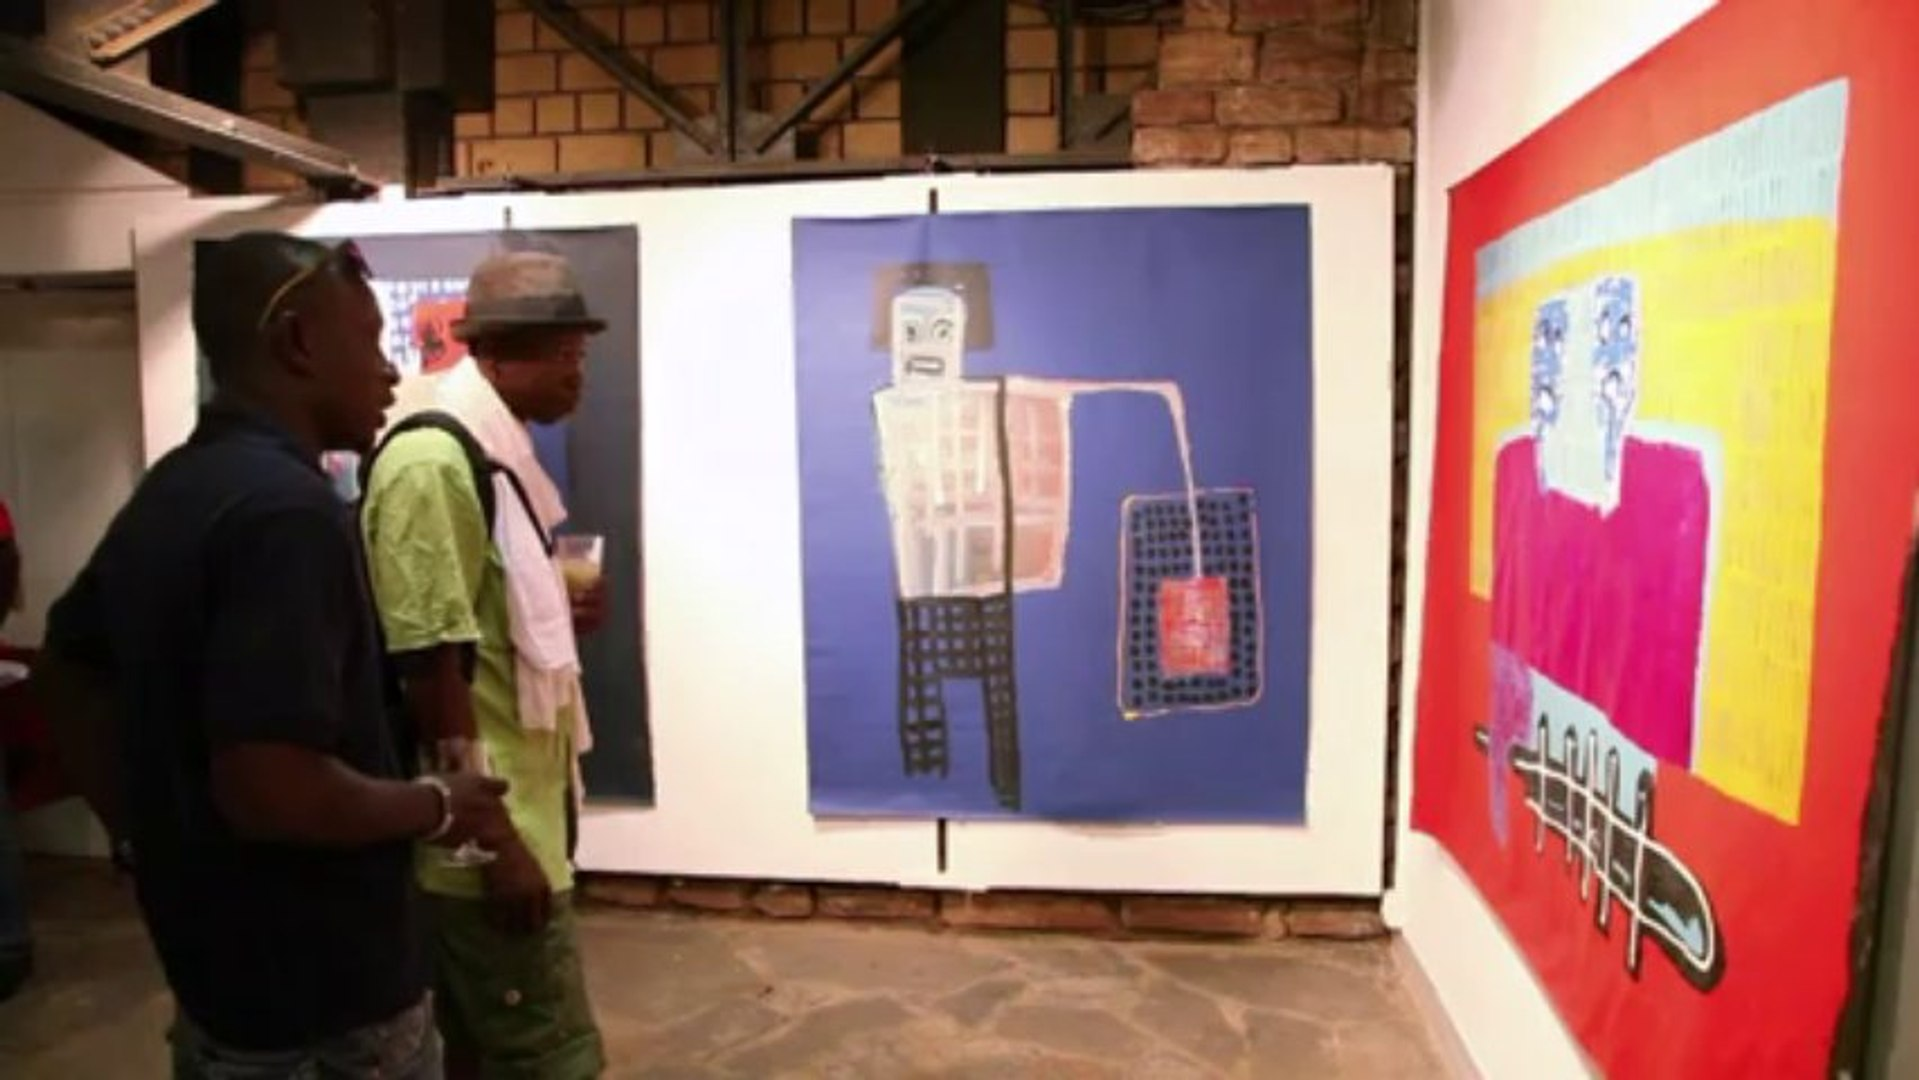 Malian artist tells story of his troubled country